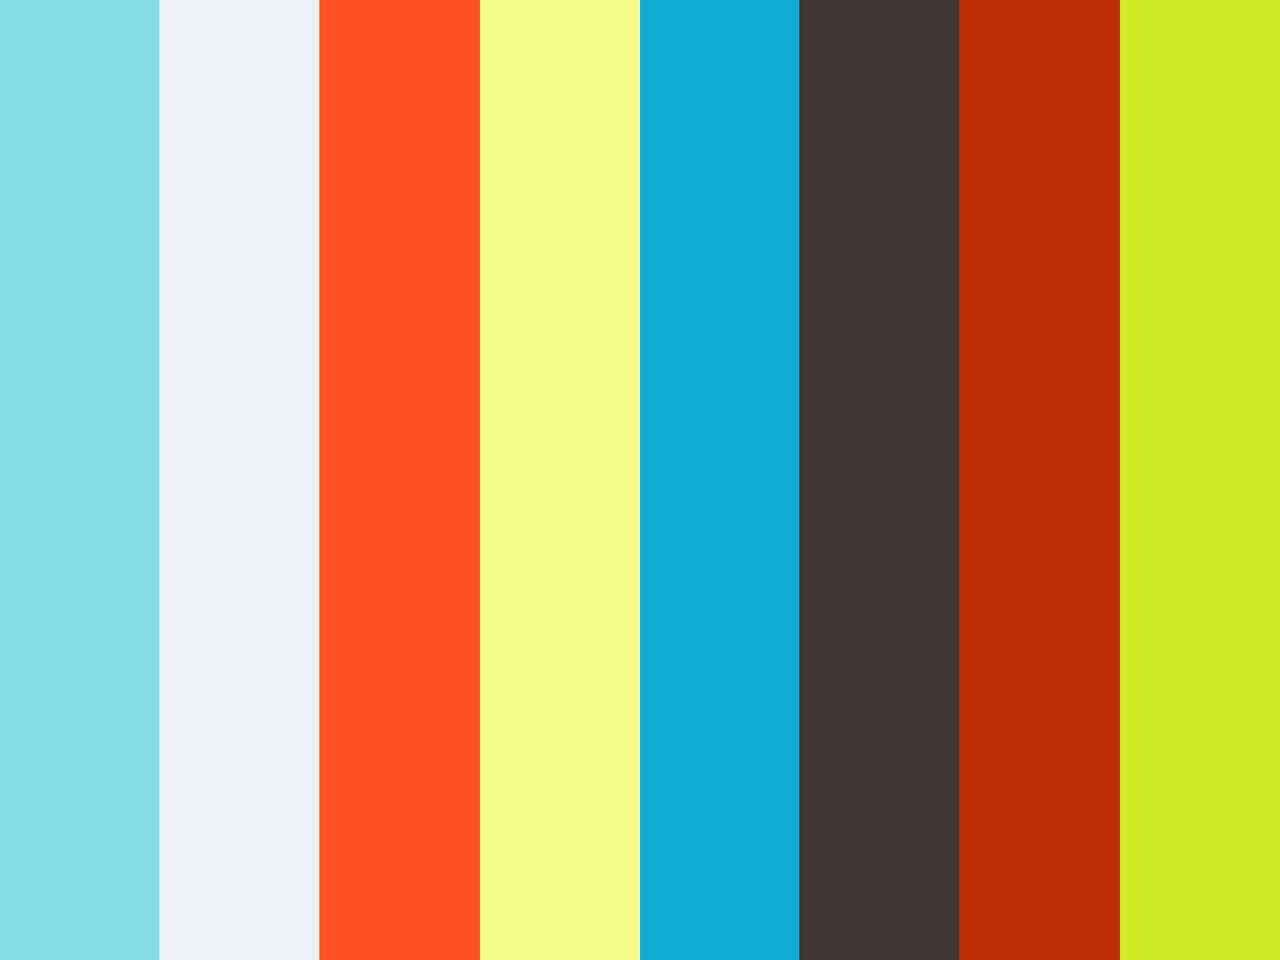 Saugus Board of Selectmen Meeting - December 2, 2015